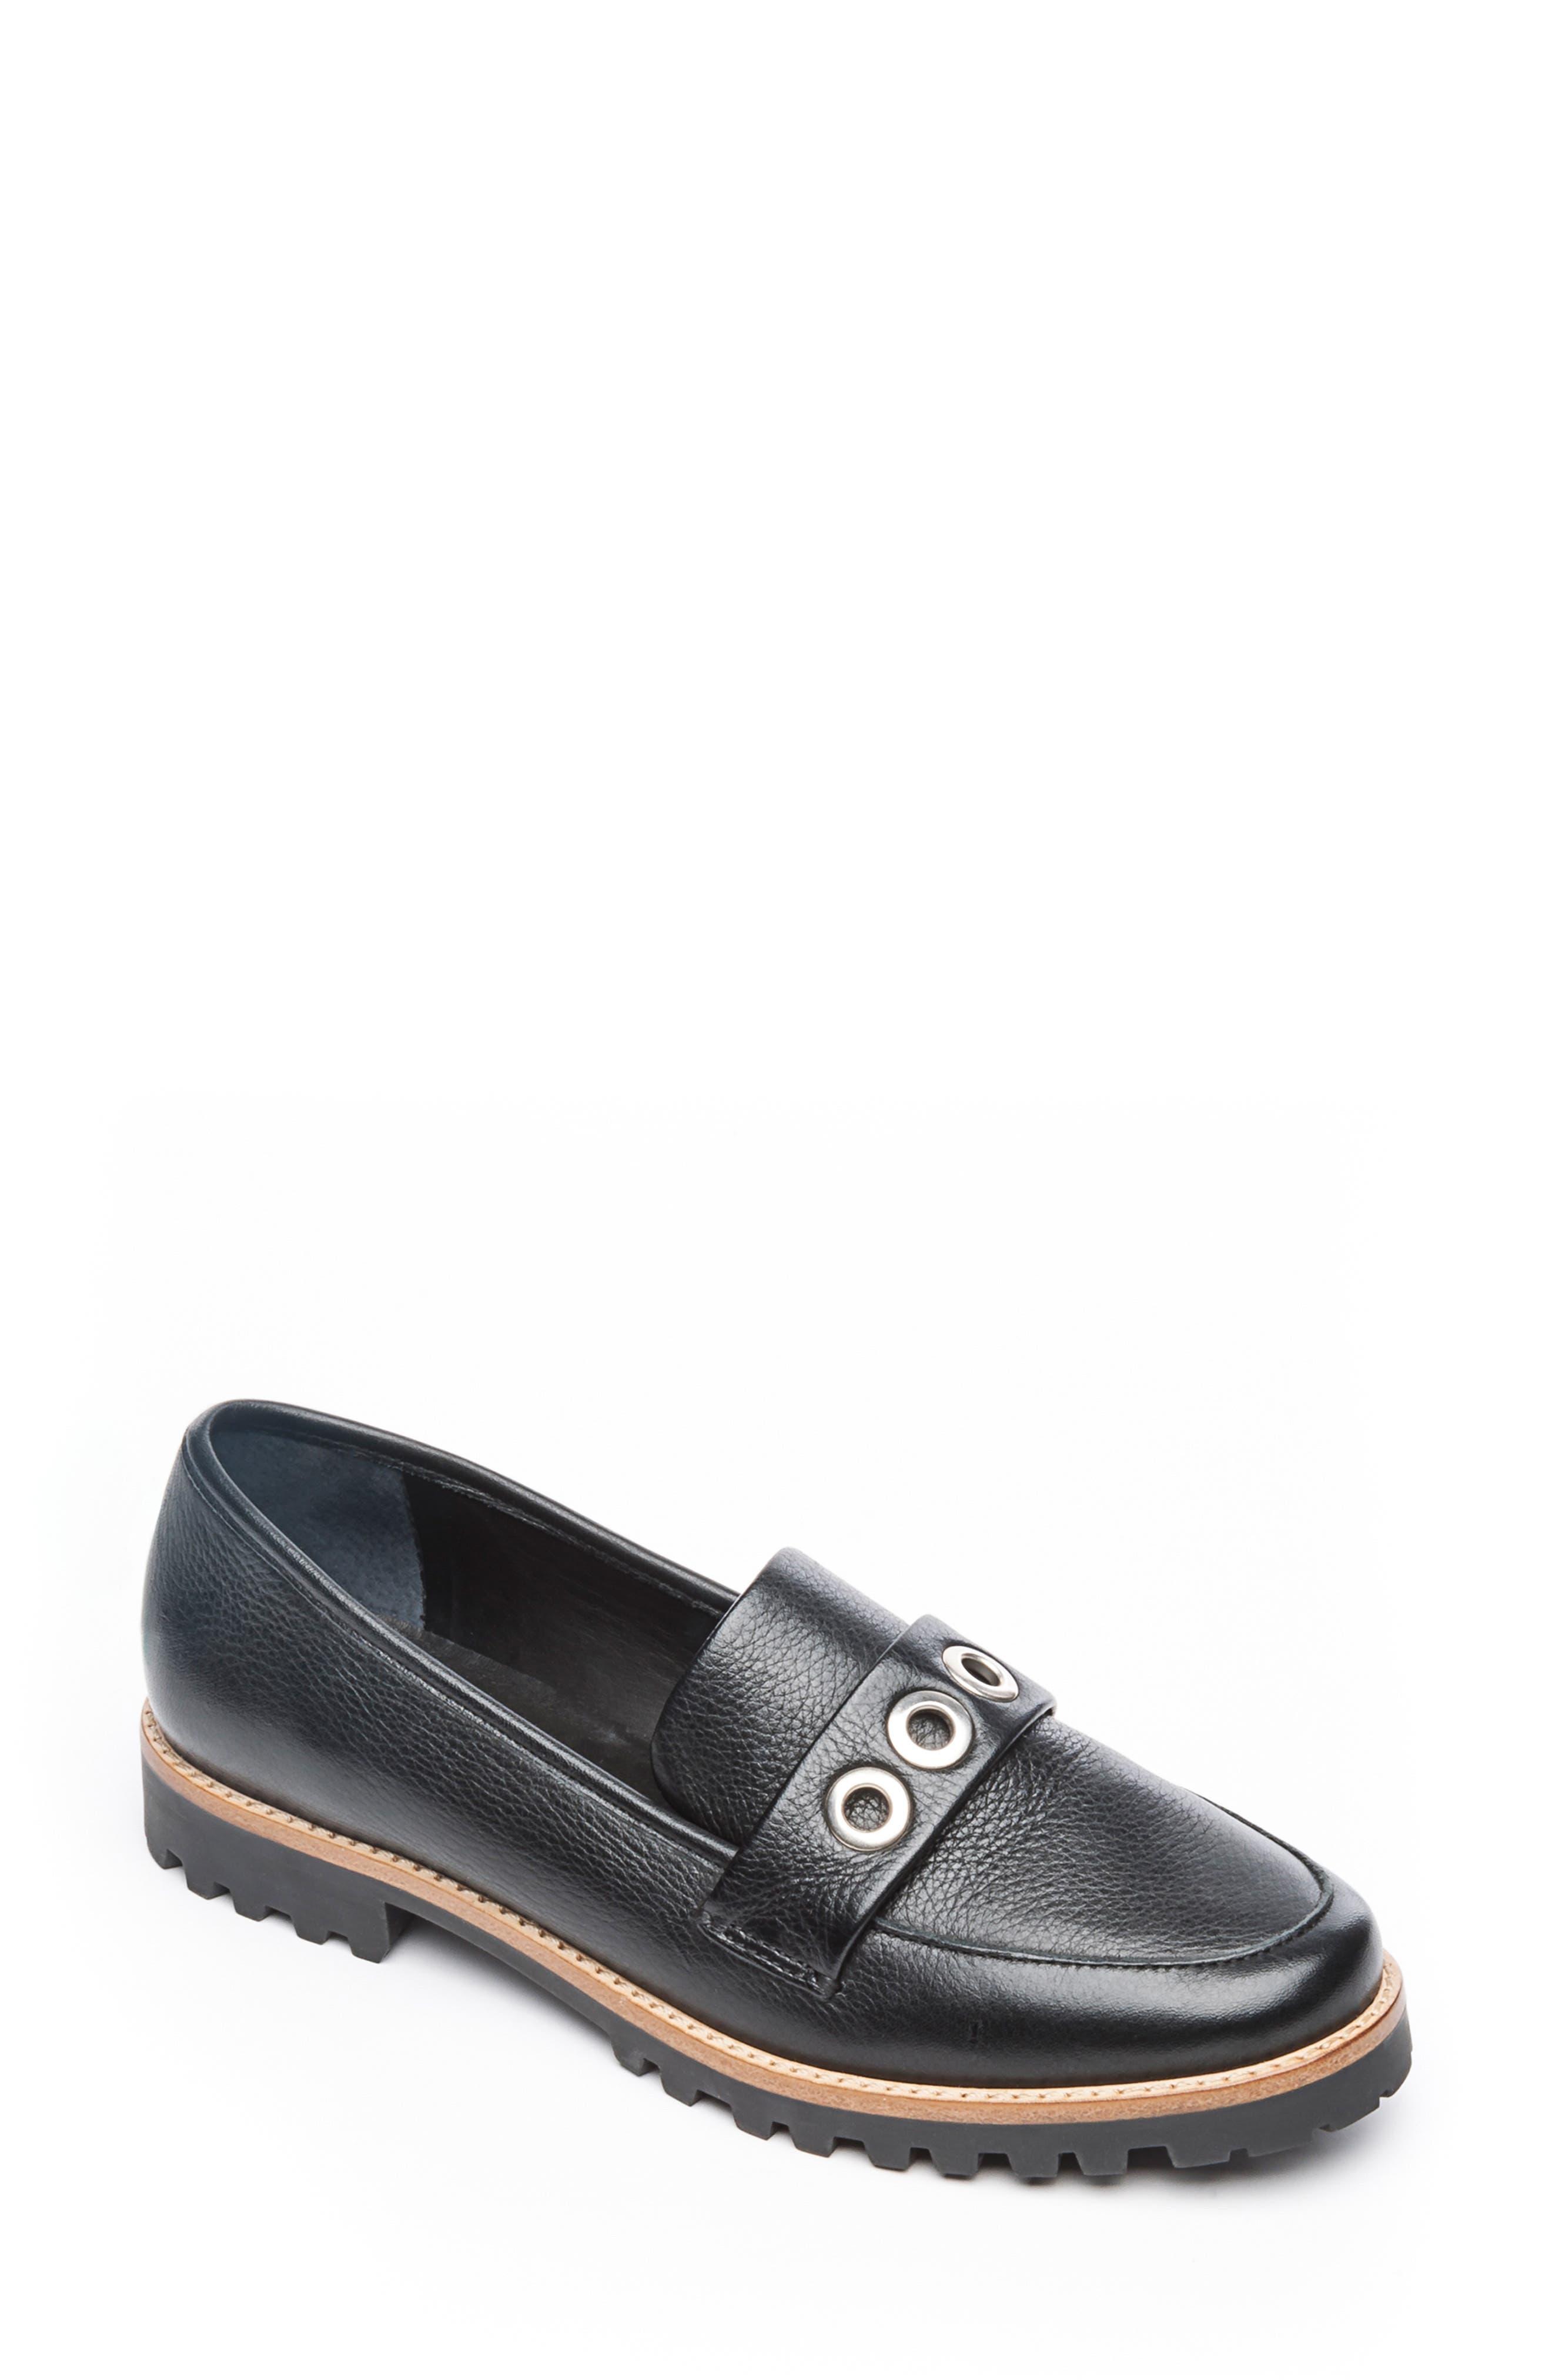 Bernardo Ozzy Loafer, Black